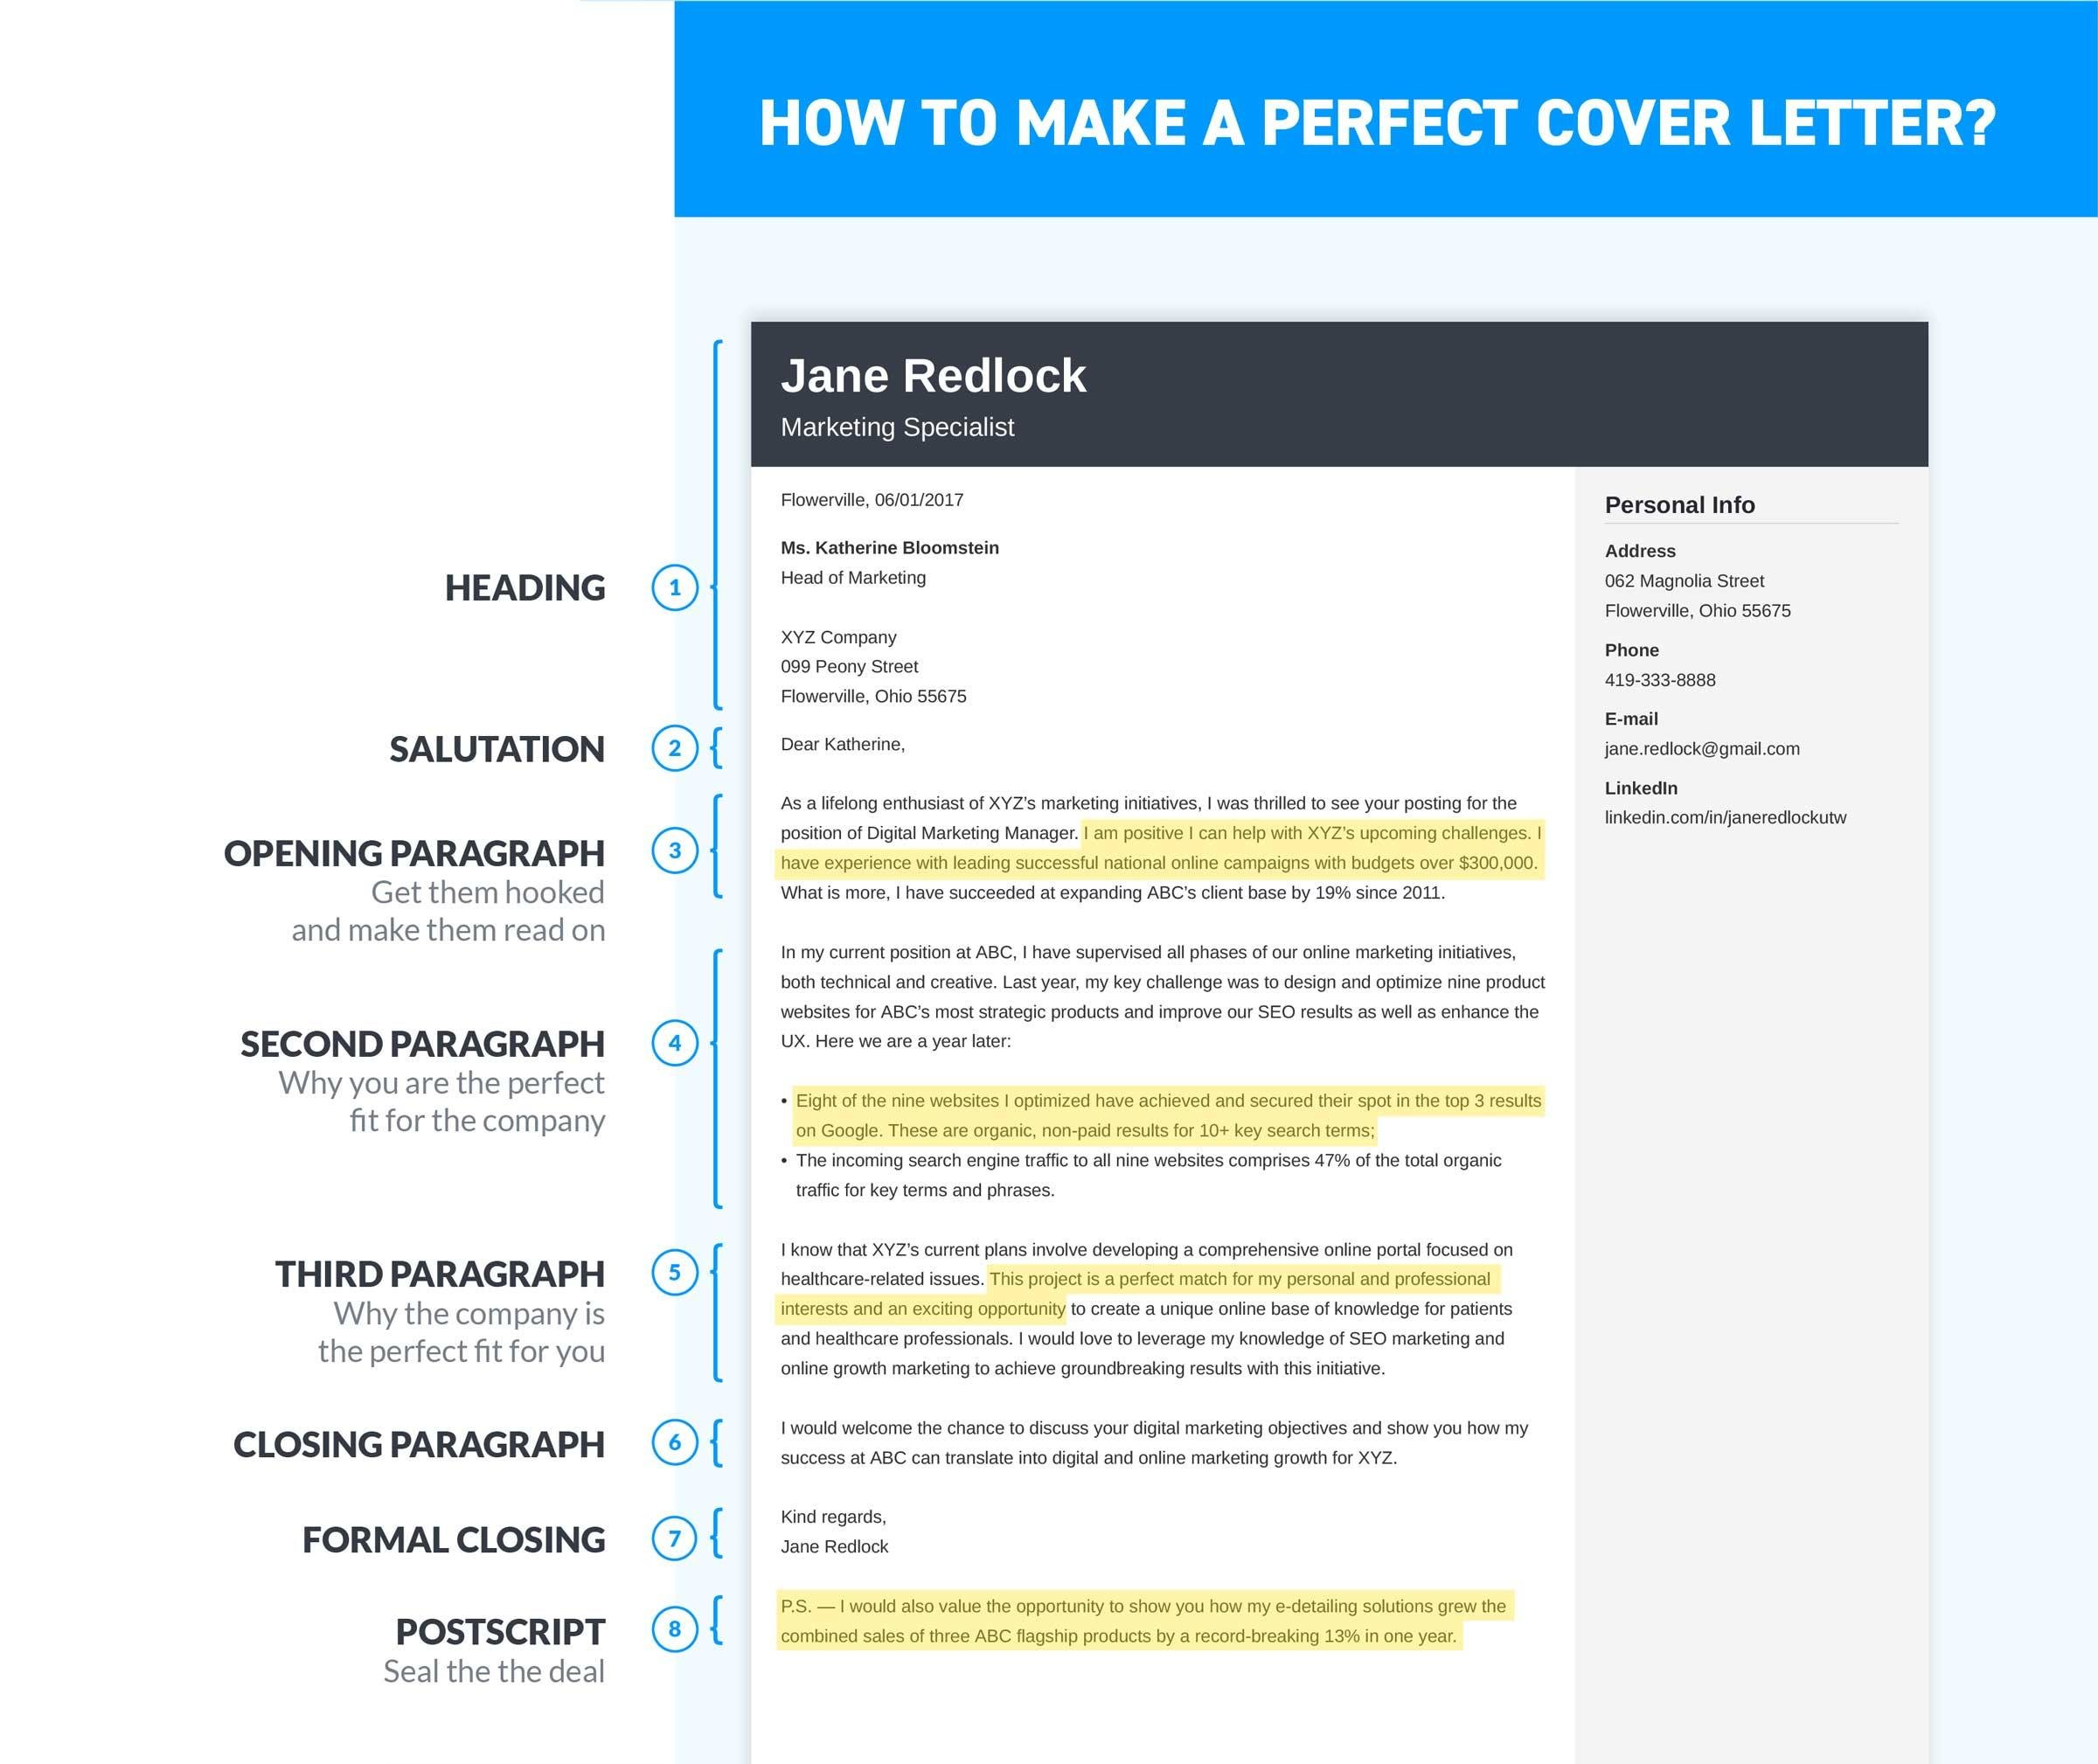 How To Write A Cover Letter In 8 Simple Steps 12 Examples - Writing-a-resume-and-cover-letter